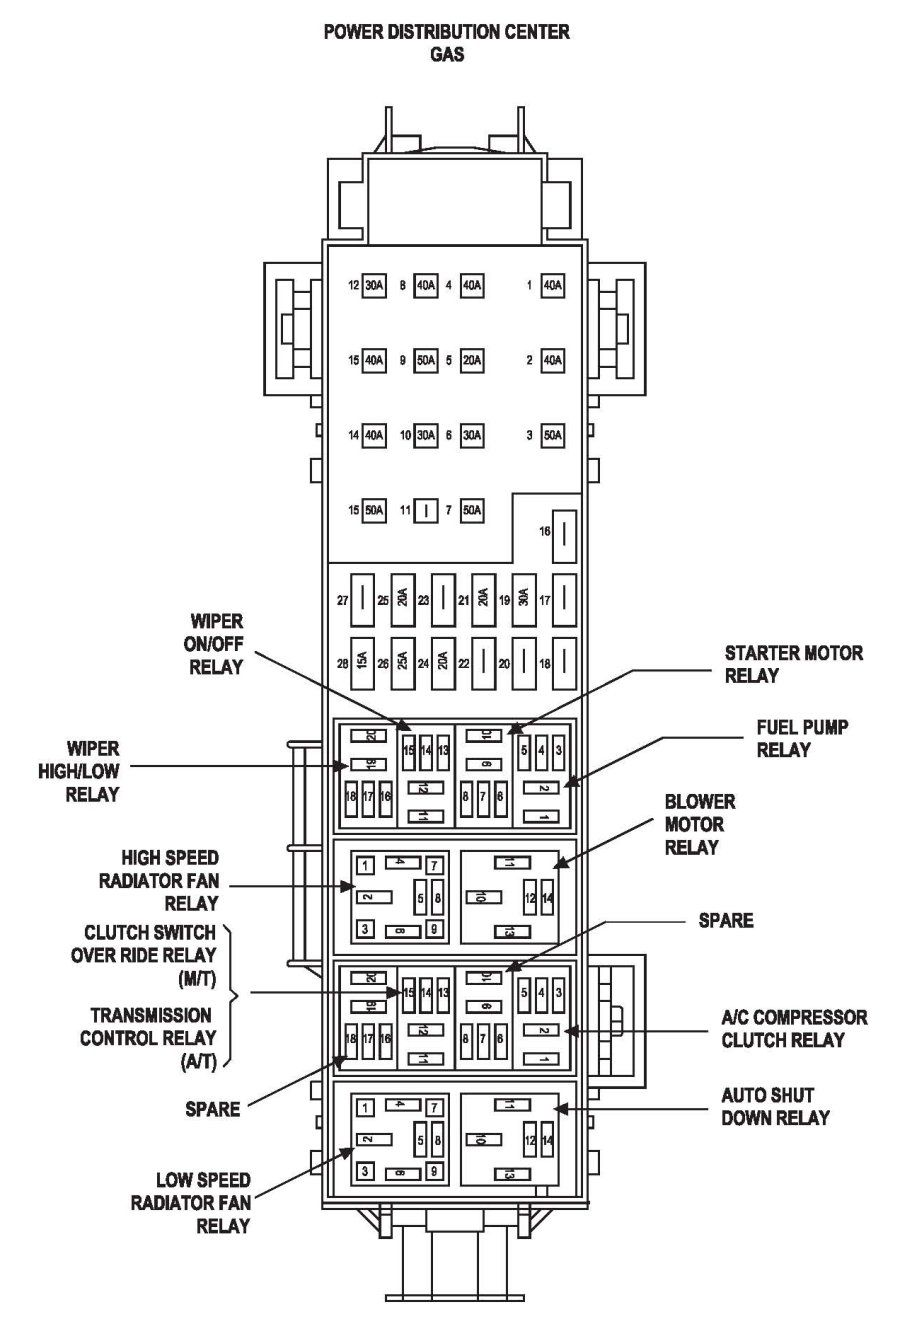 hight resolution of 2008 dodge nitro fuse box layout wiring diagram post 2008 dodge nitro fuse box layout